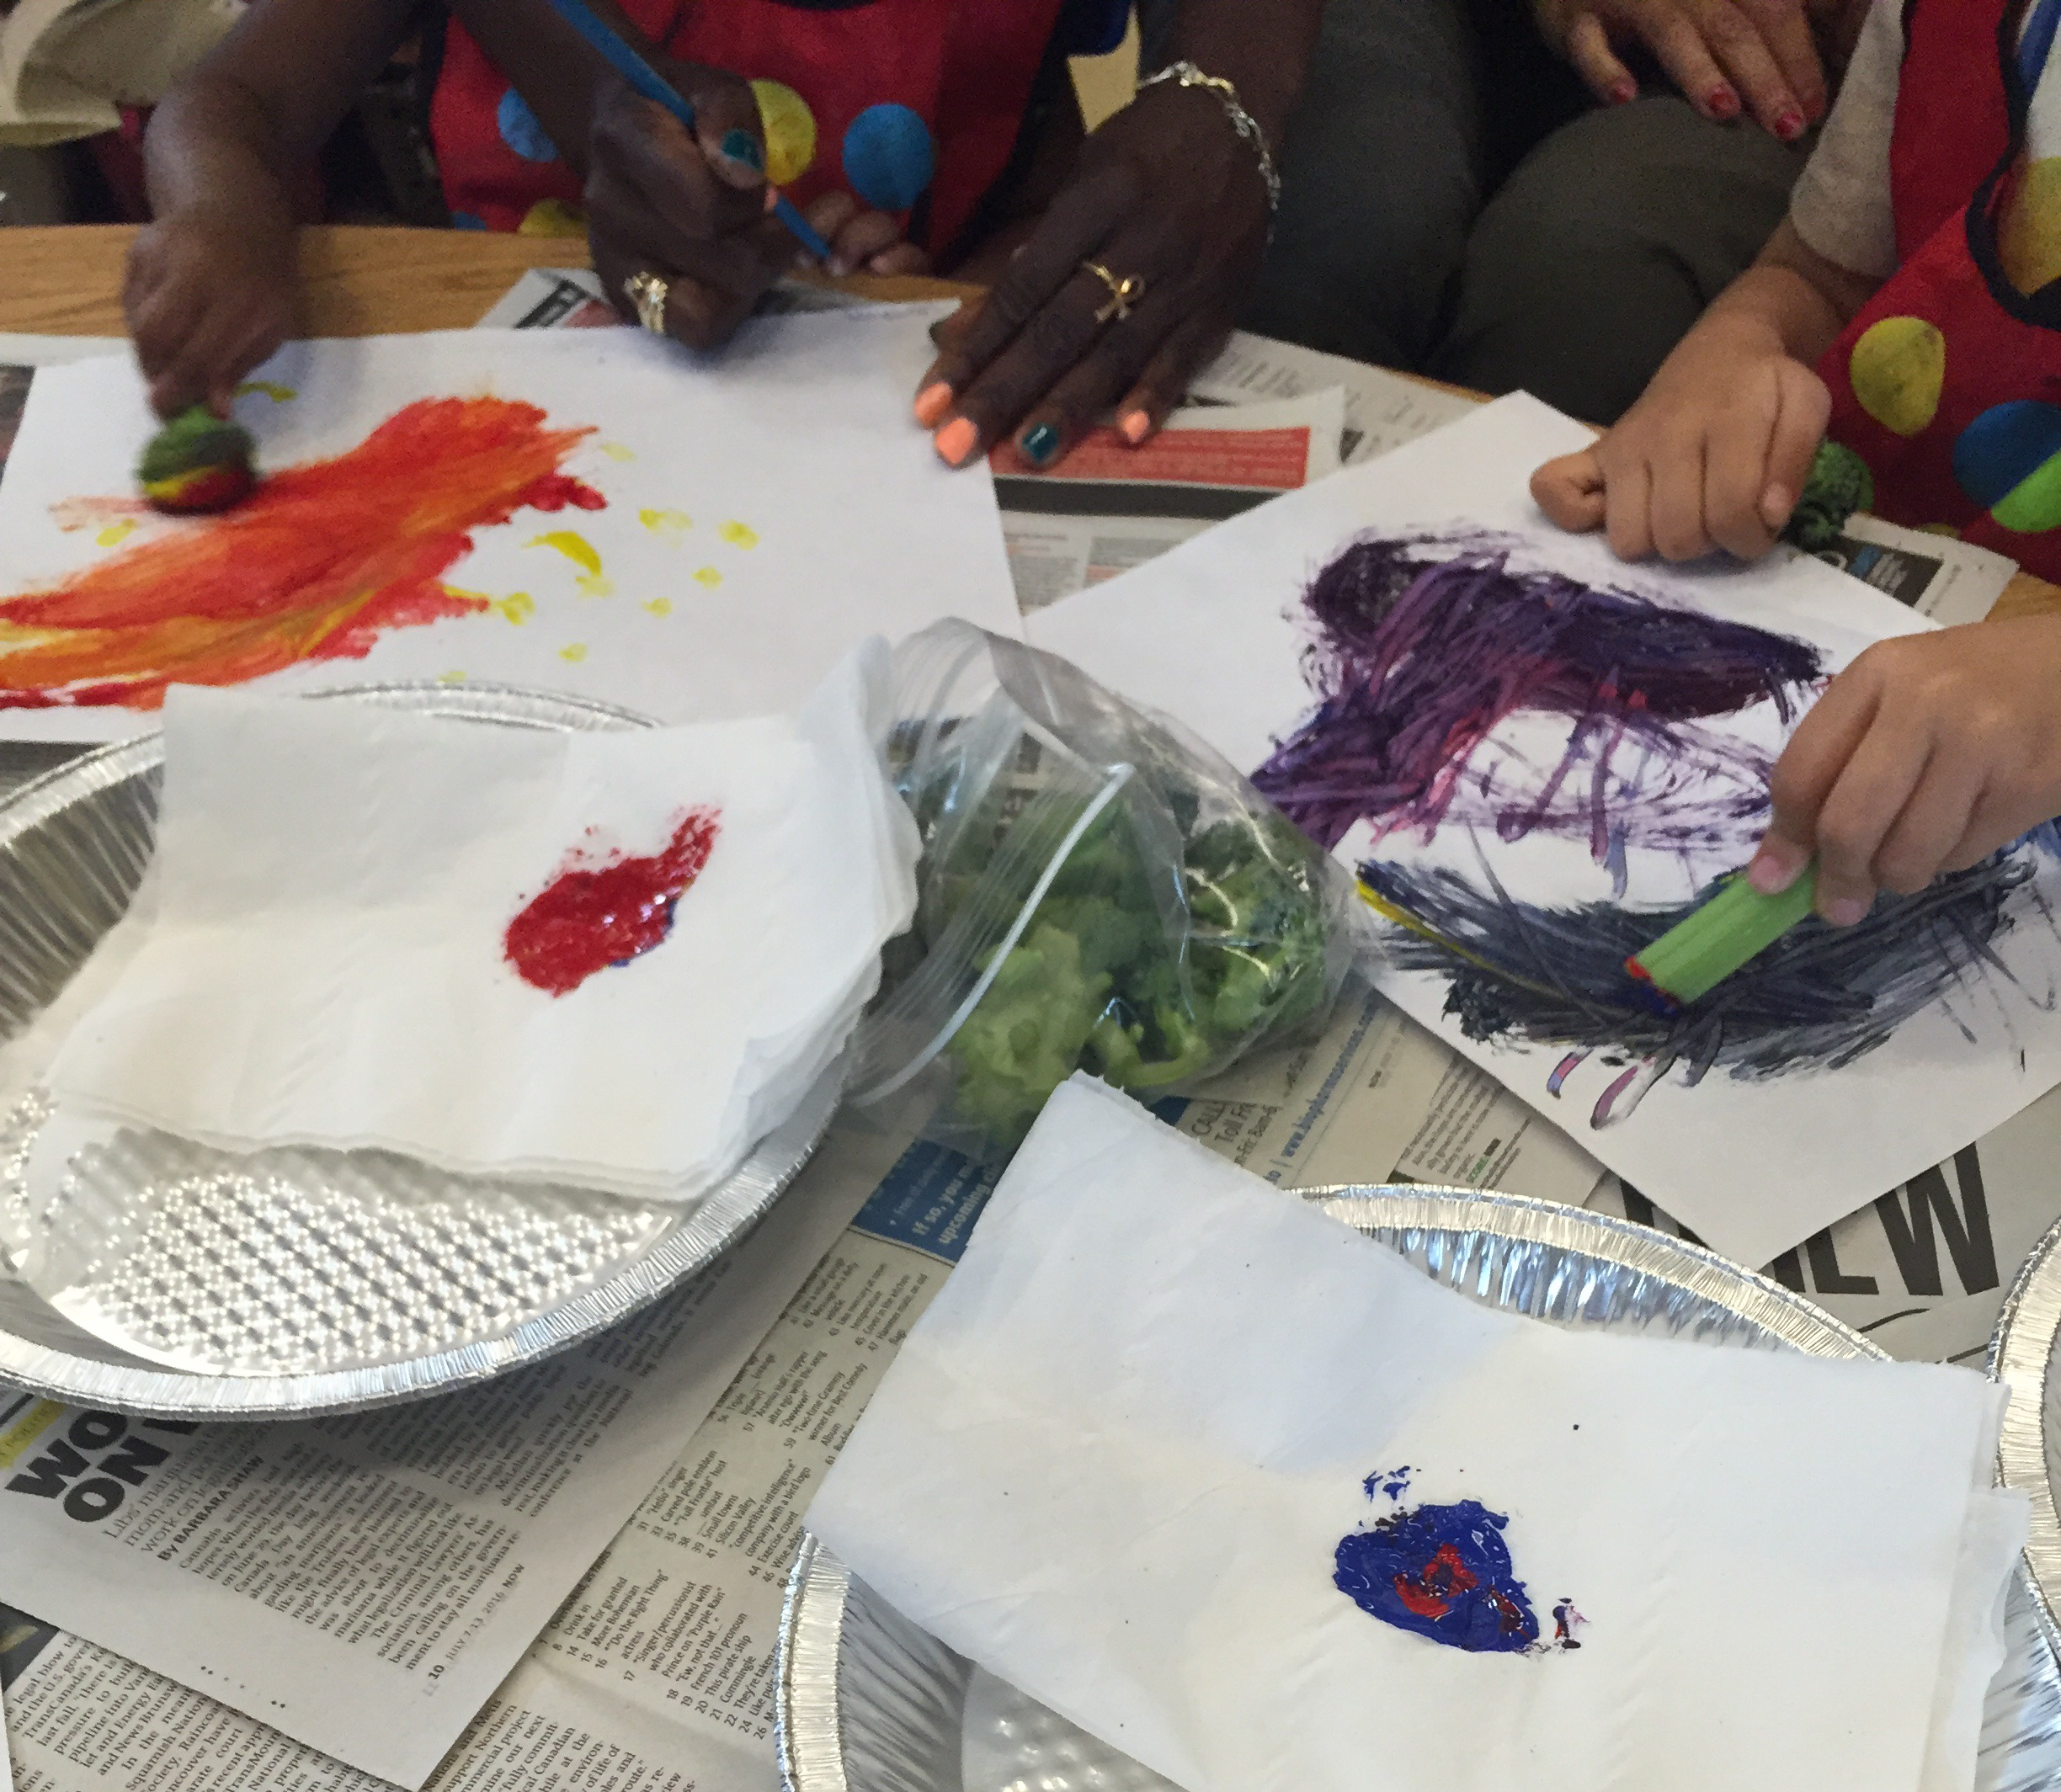 Mixing primary colours with broccoli and celery and making prints